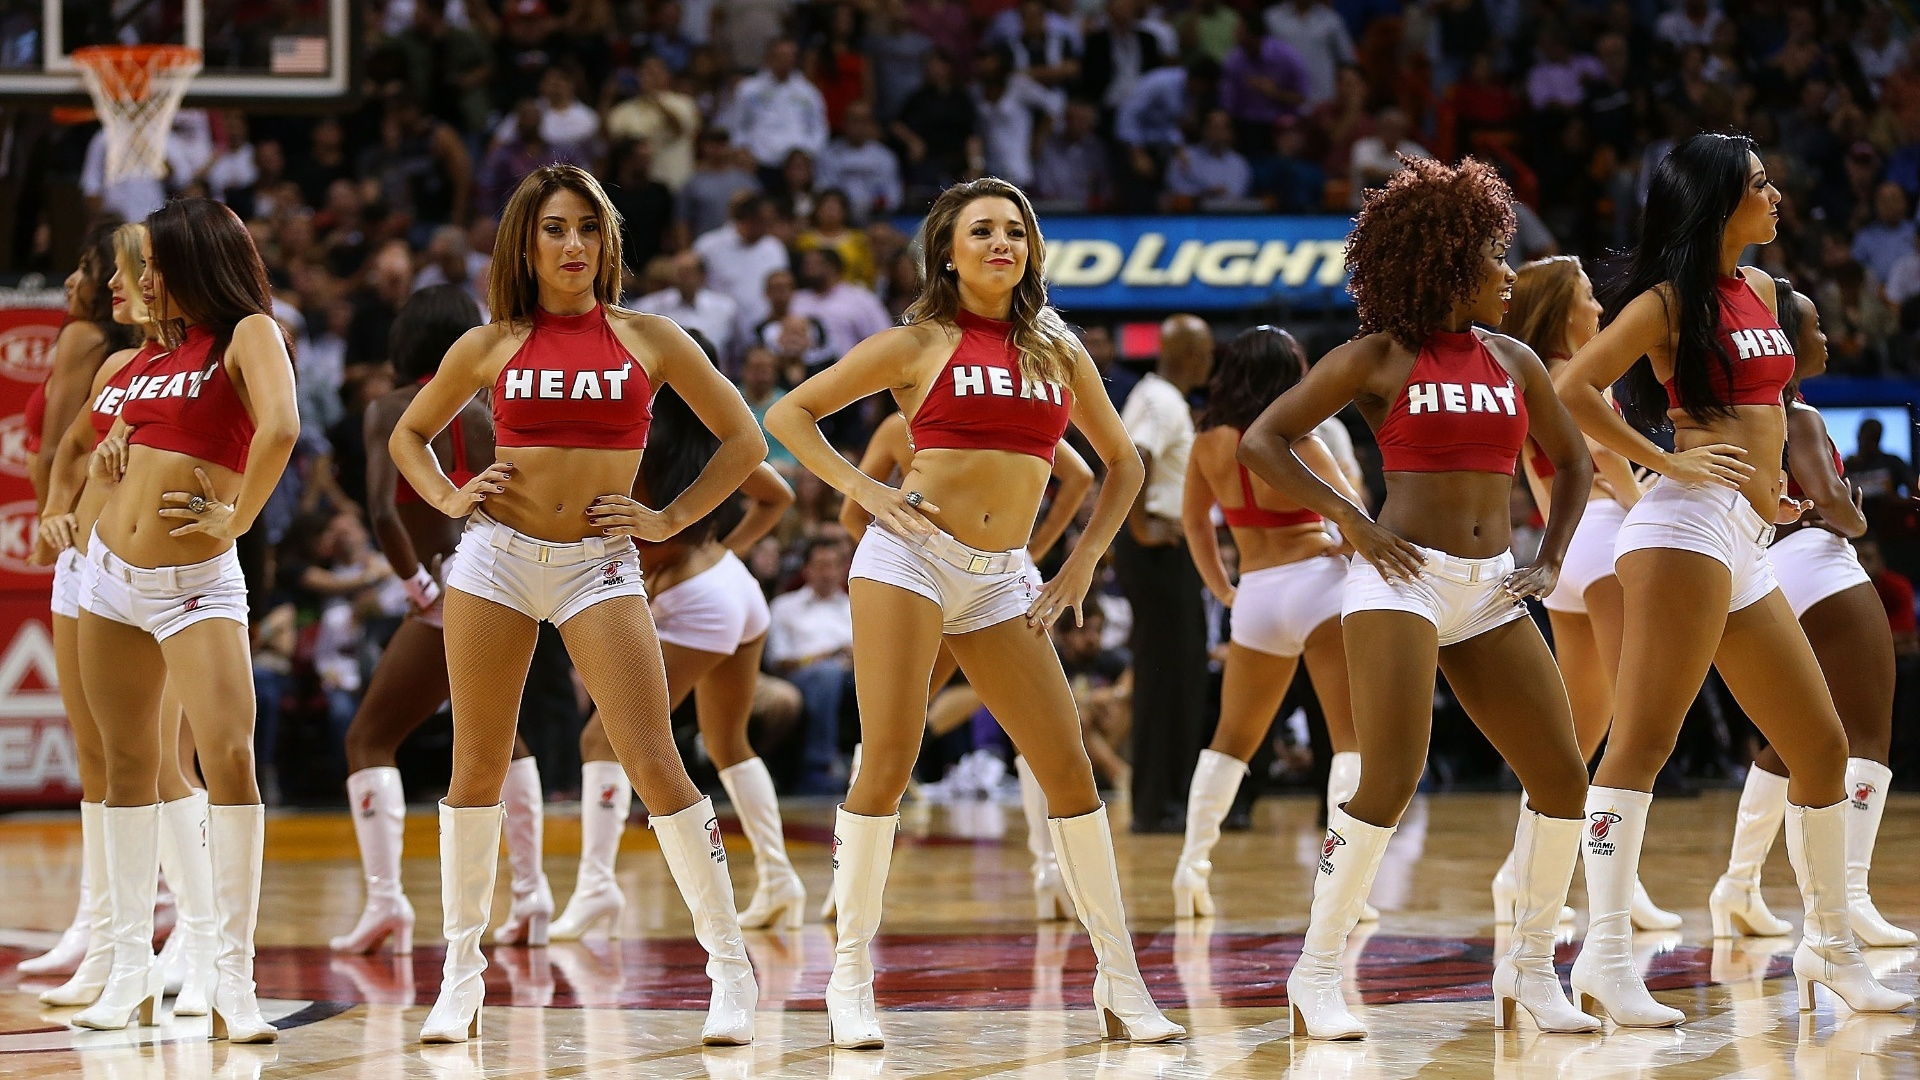 04.nov.2014 - Cheerleaders do Miami Heat fazem apresentação na partida contra o Houston Rockets